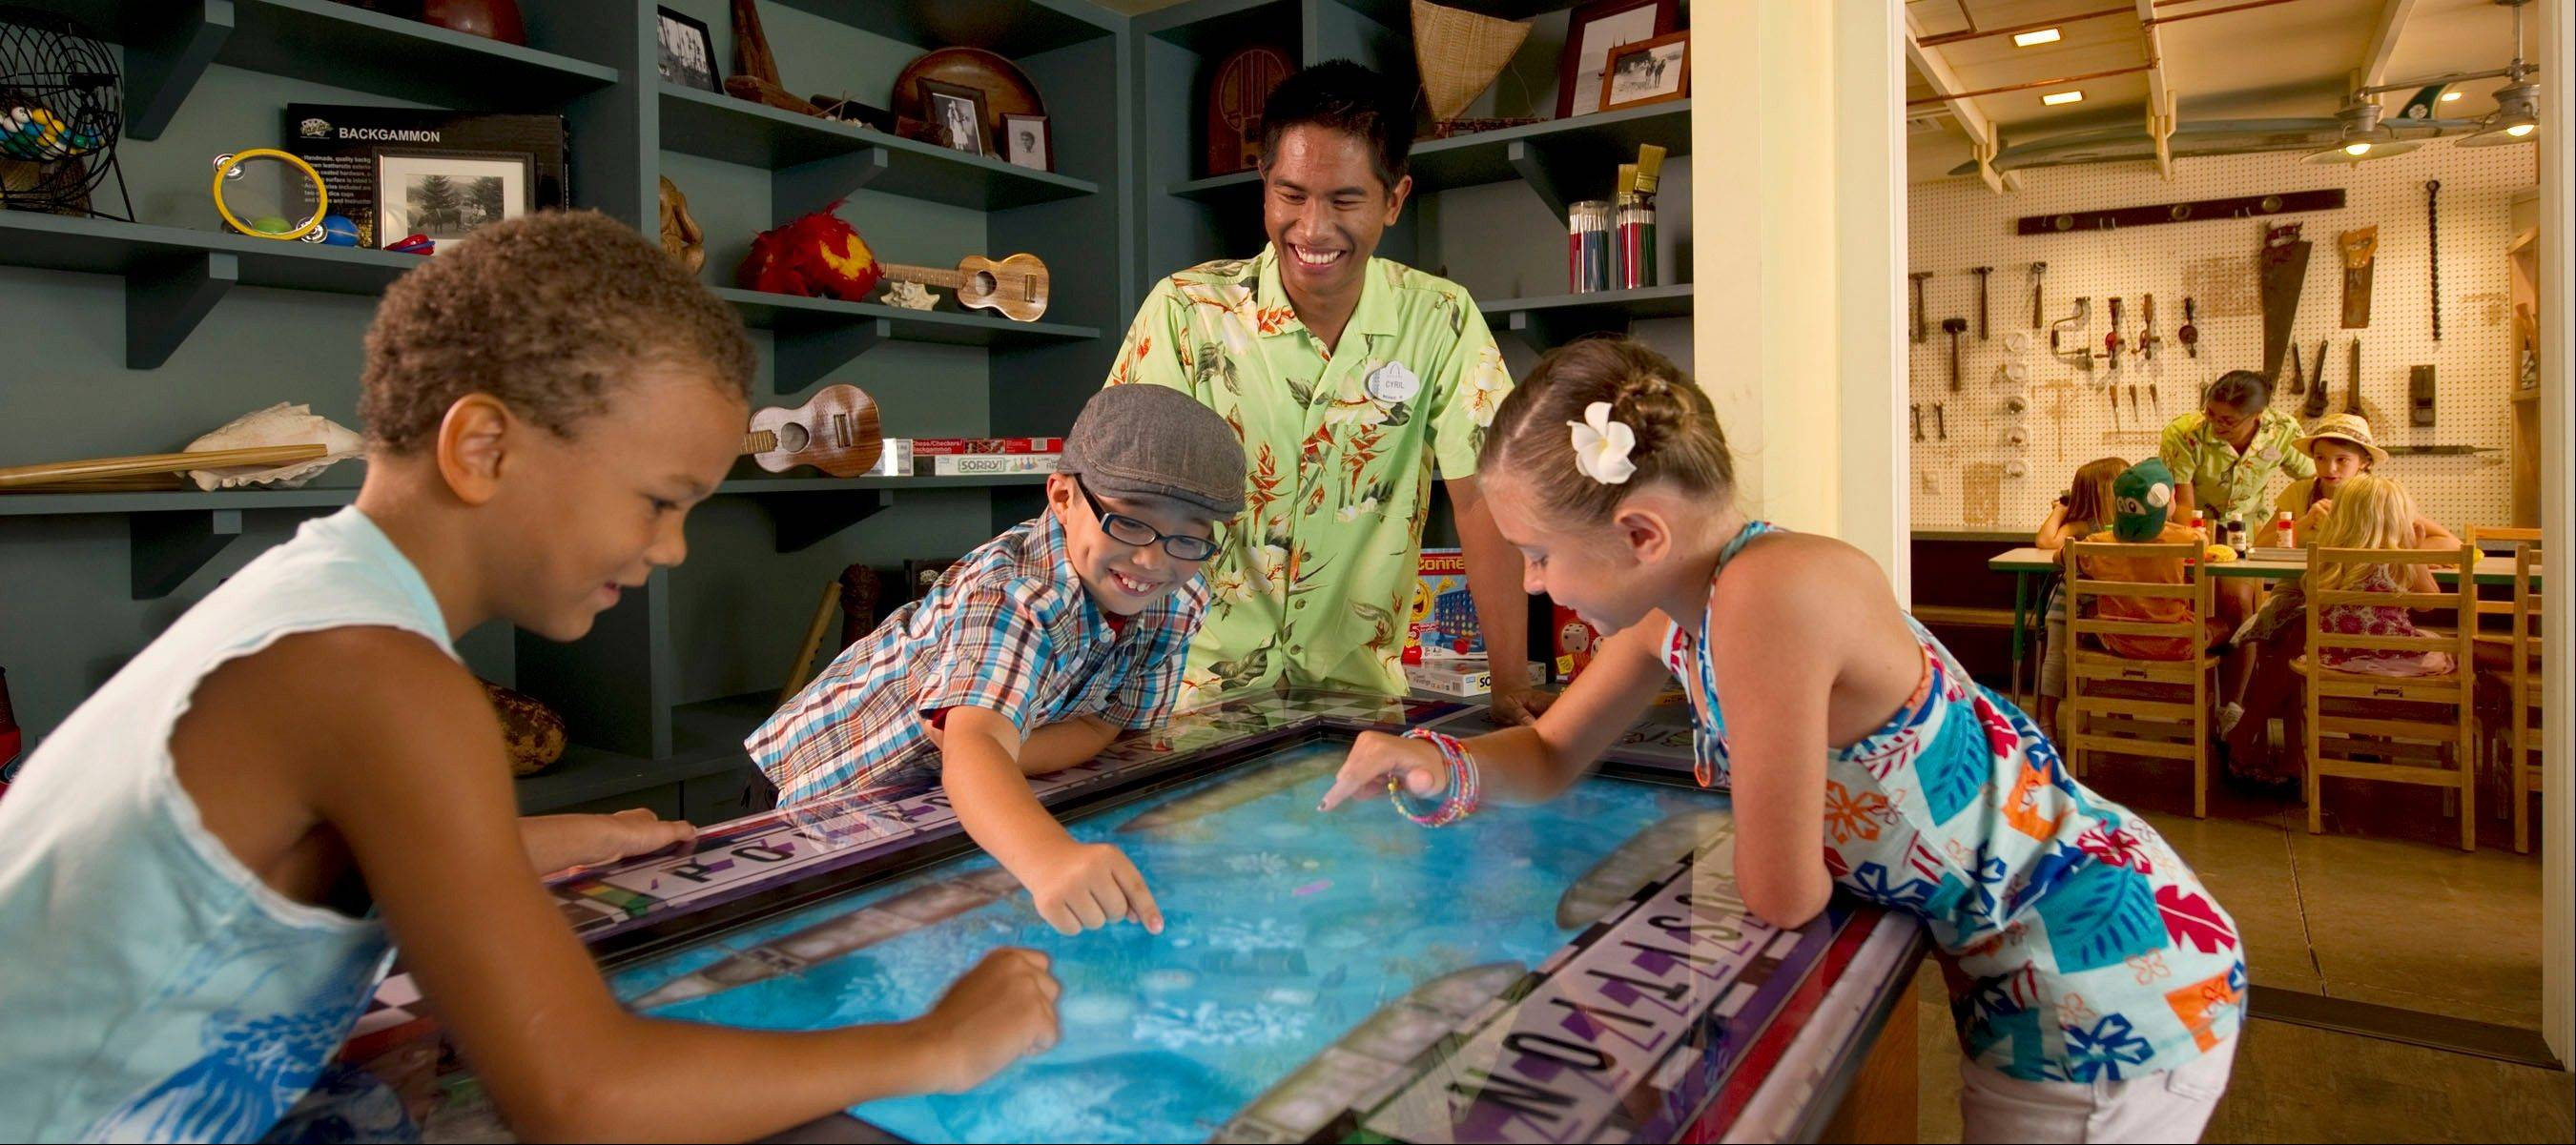 Kids play with a touch-screen game in Aunty's Beach House at Aulani, a new Disney Resort & Spa in Hawaii.